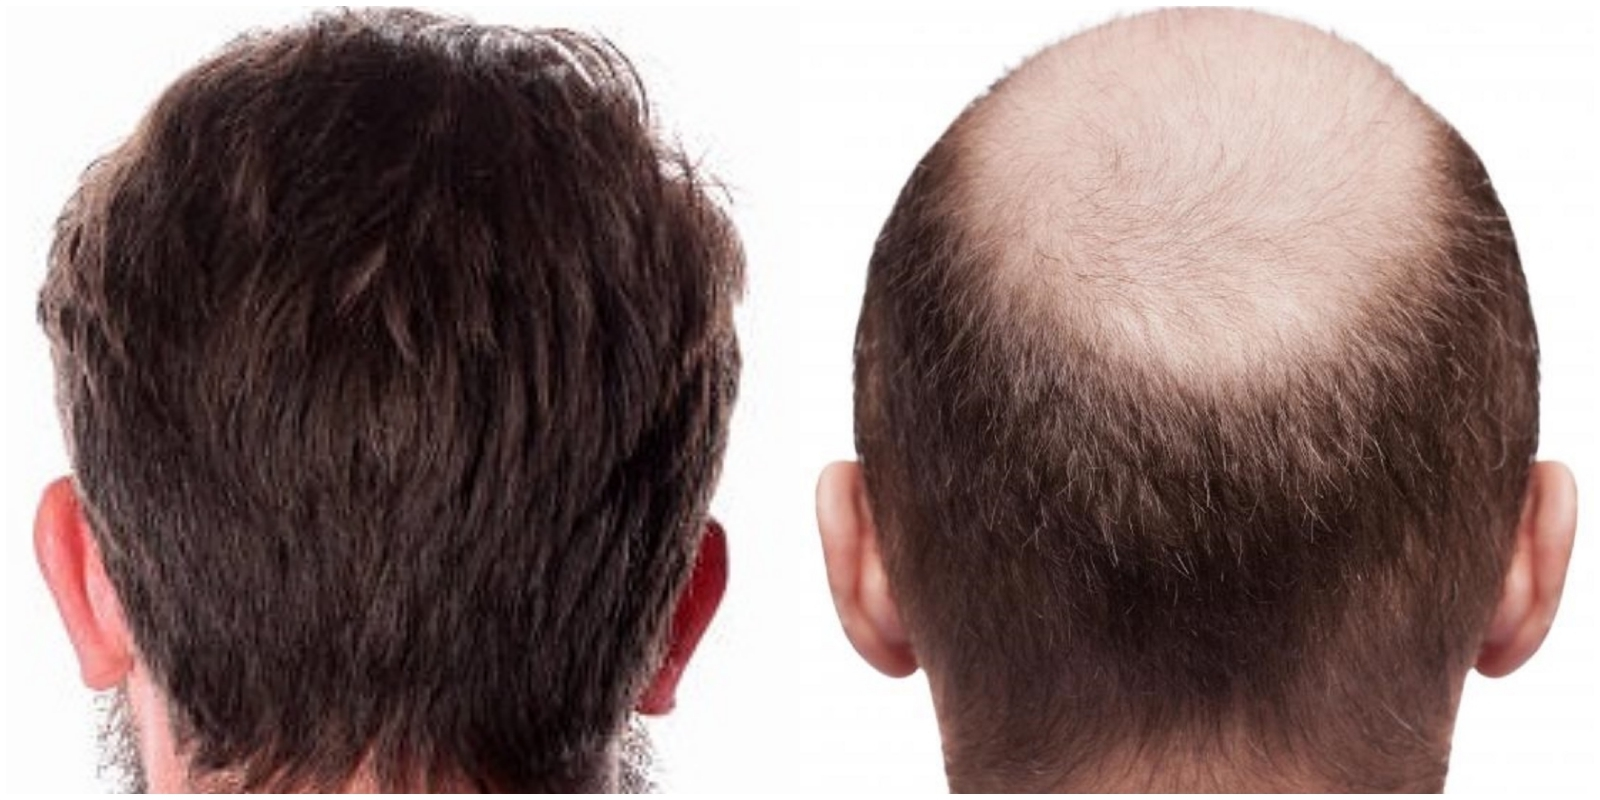 does fue hair transplant